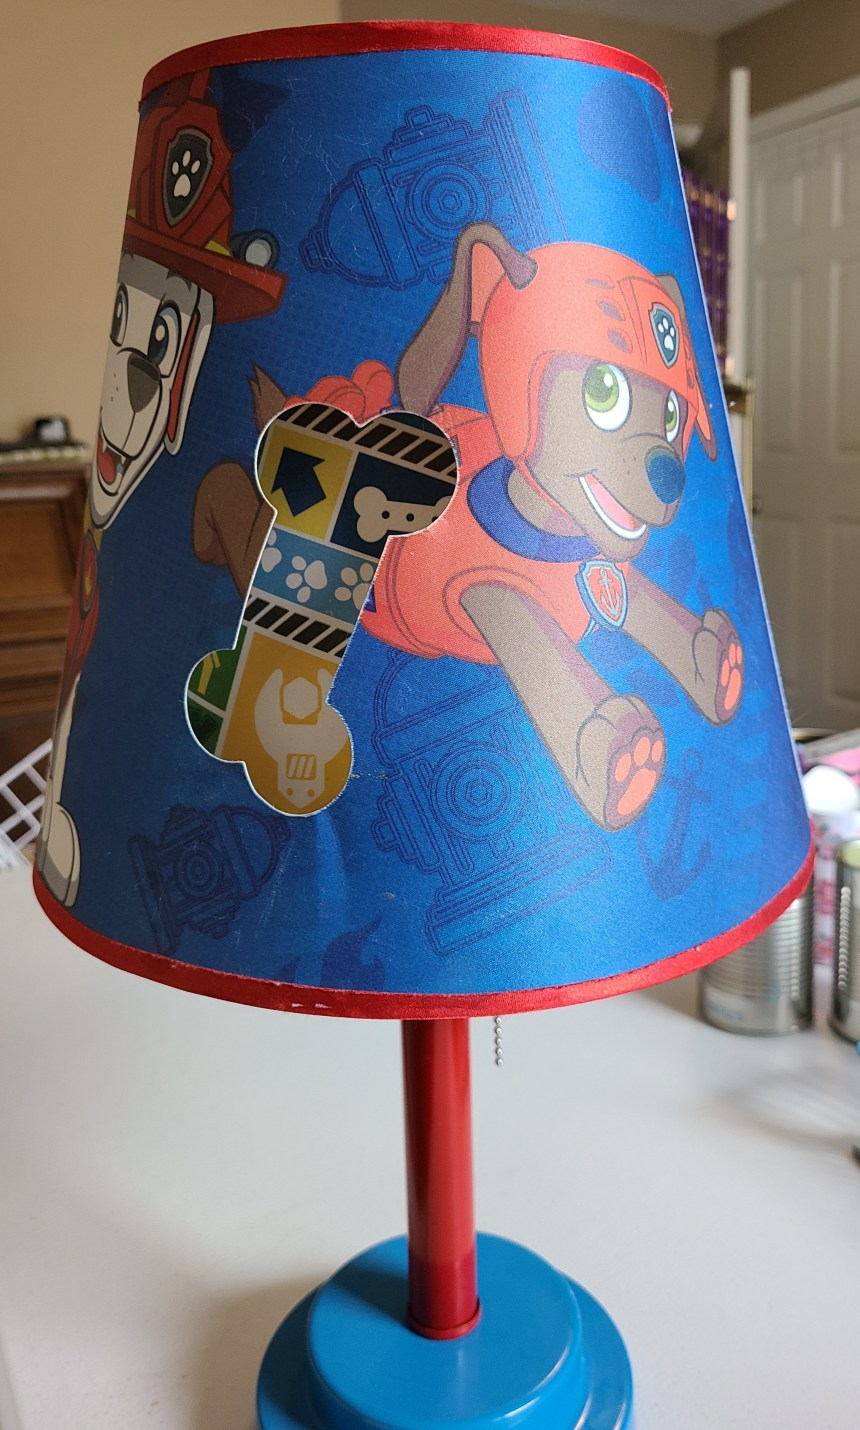 Paw Patrol lamp before it became the upcycled superhero lamp. Blue base, red pole the lightbulb screw into, lamp shade covered with Paw Patrol characters.